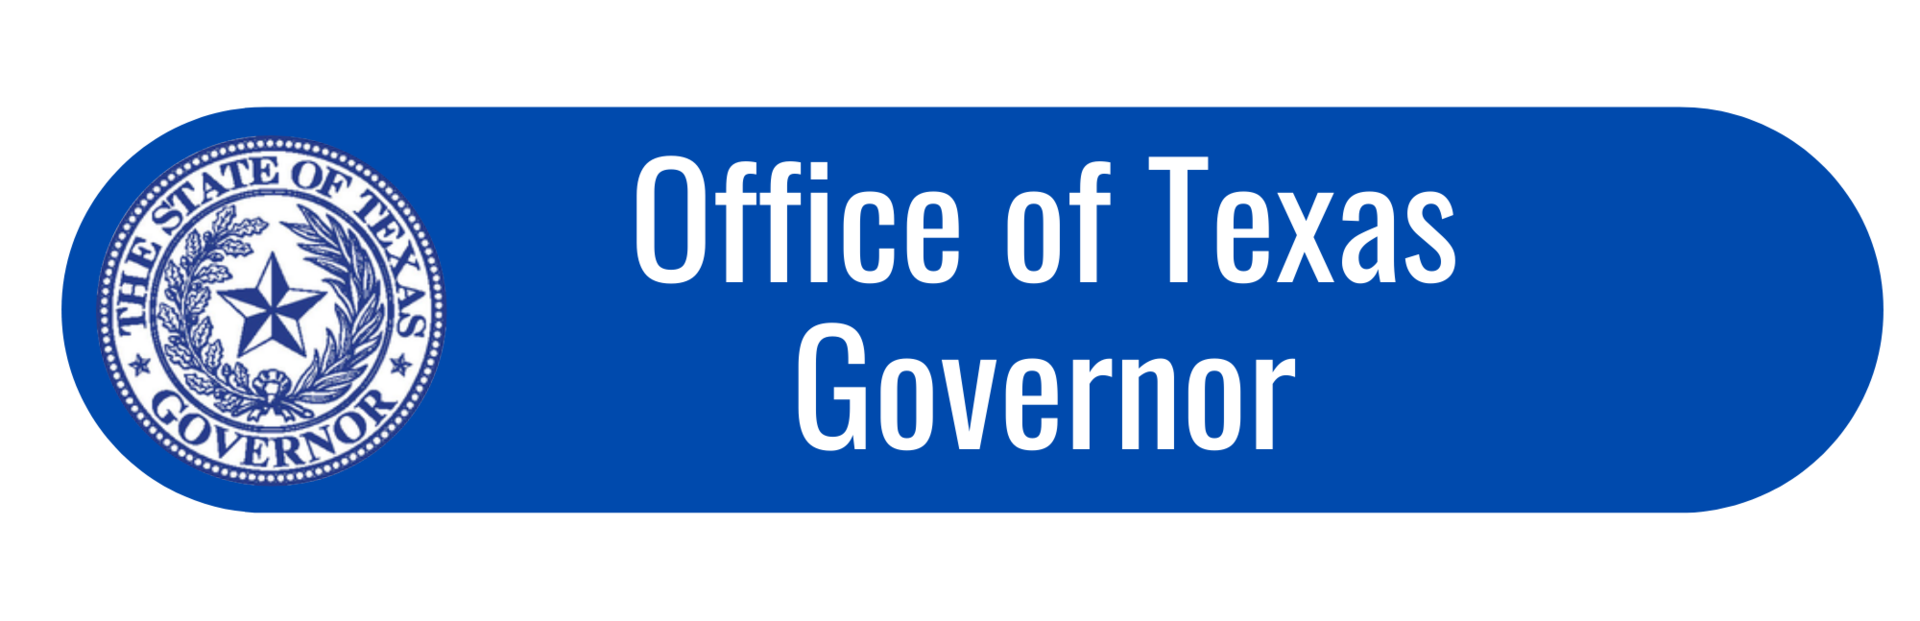 office of texas governor button